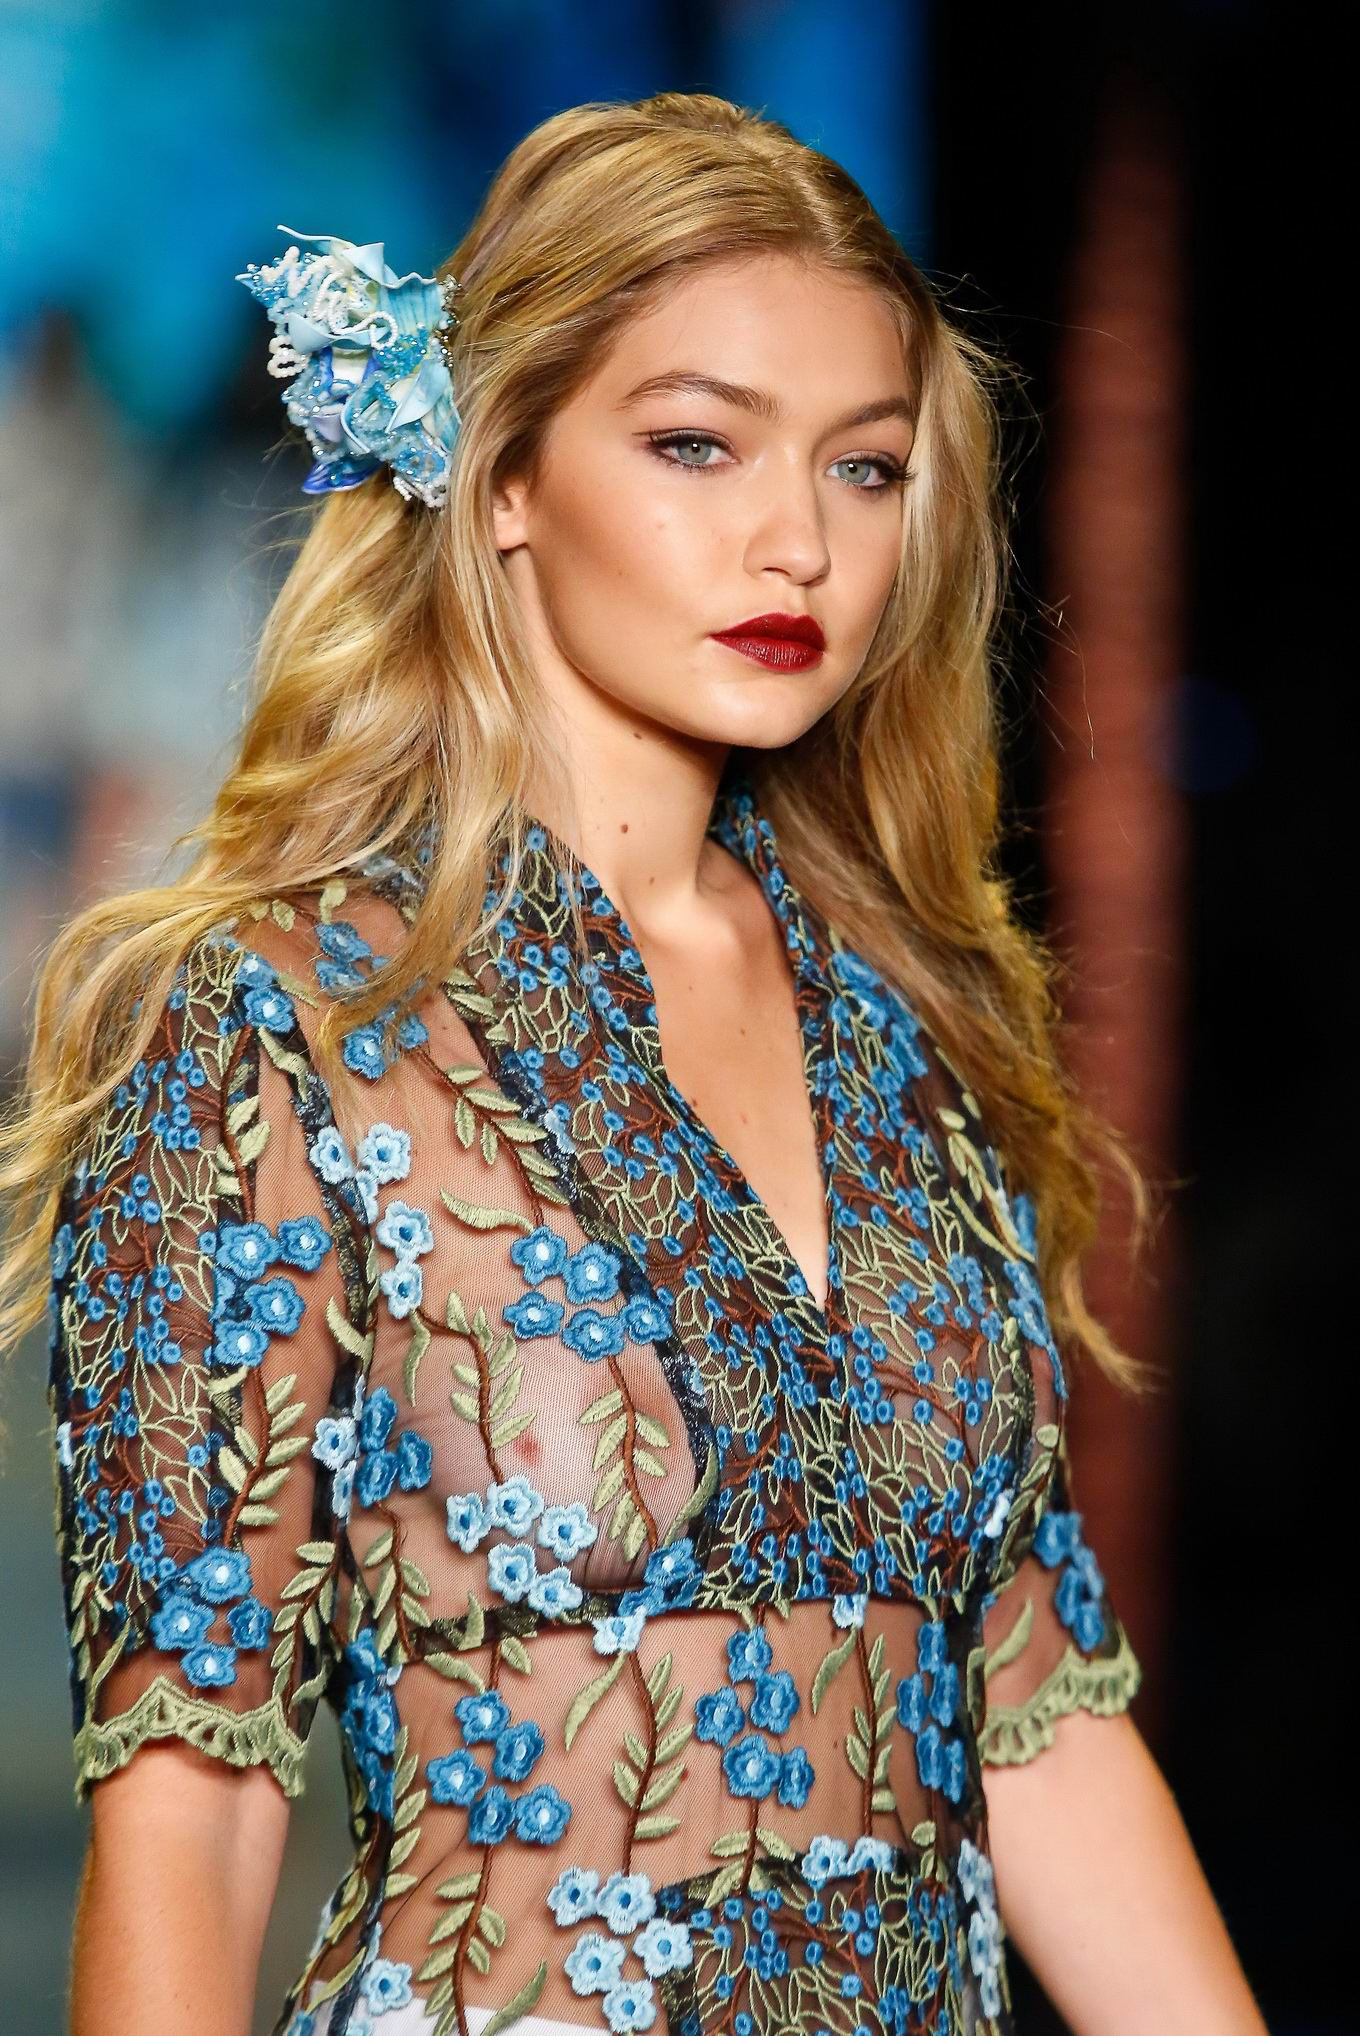 Gigi Hadid Best Beauty Trends: Gigi Hadid See-through Showing Off Her Big Boobs On The